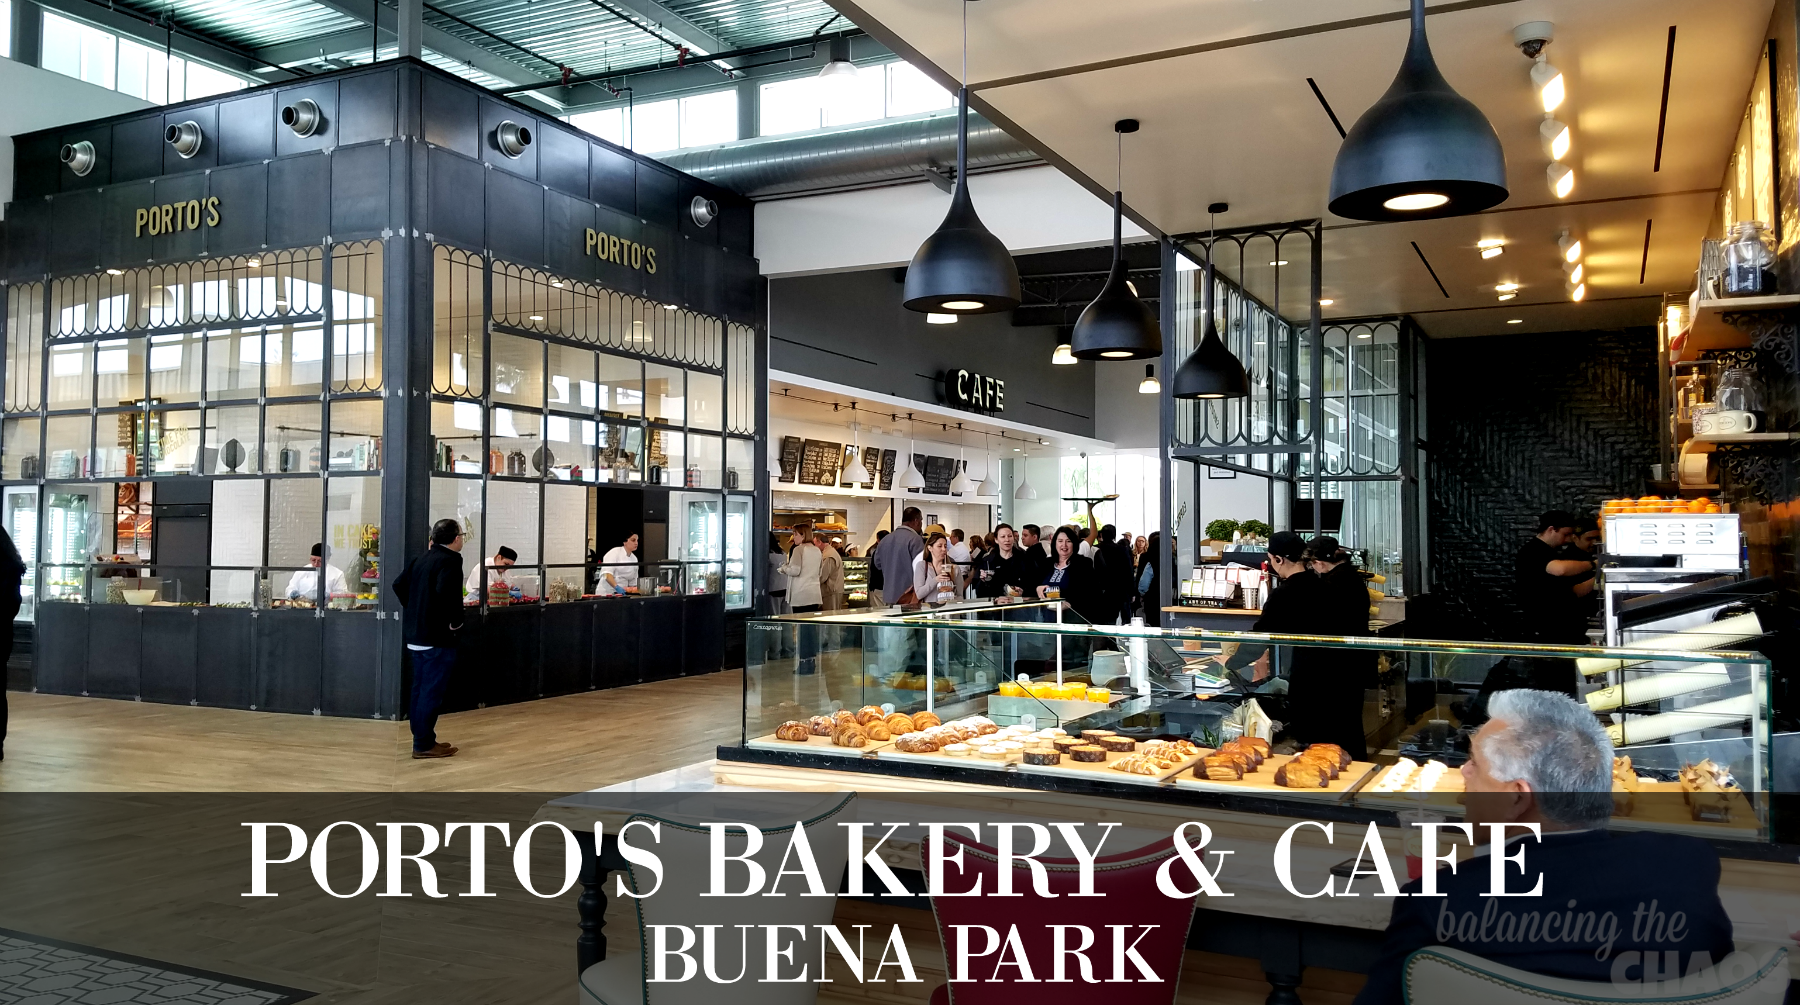 Porto's Bakery and Cafe Buena Park